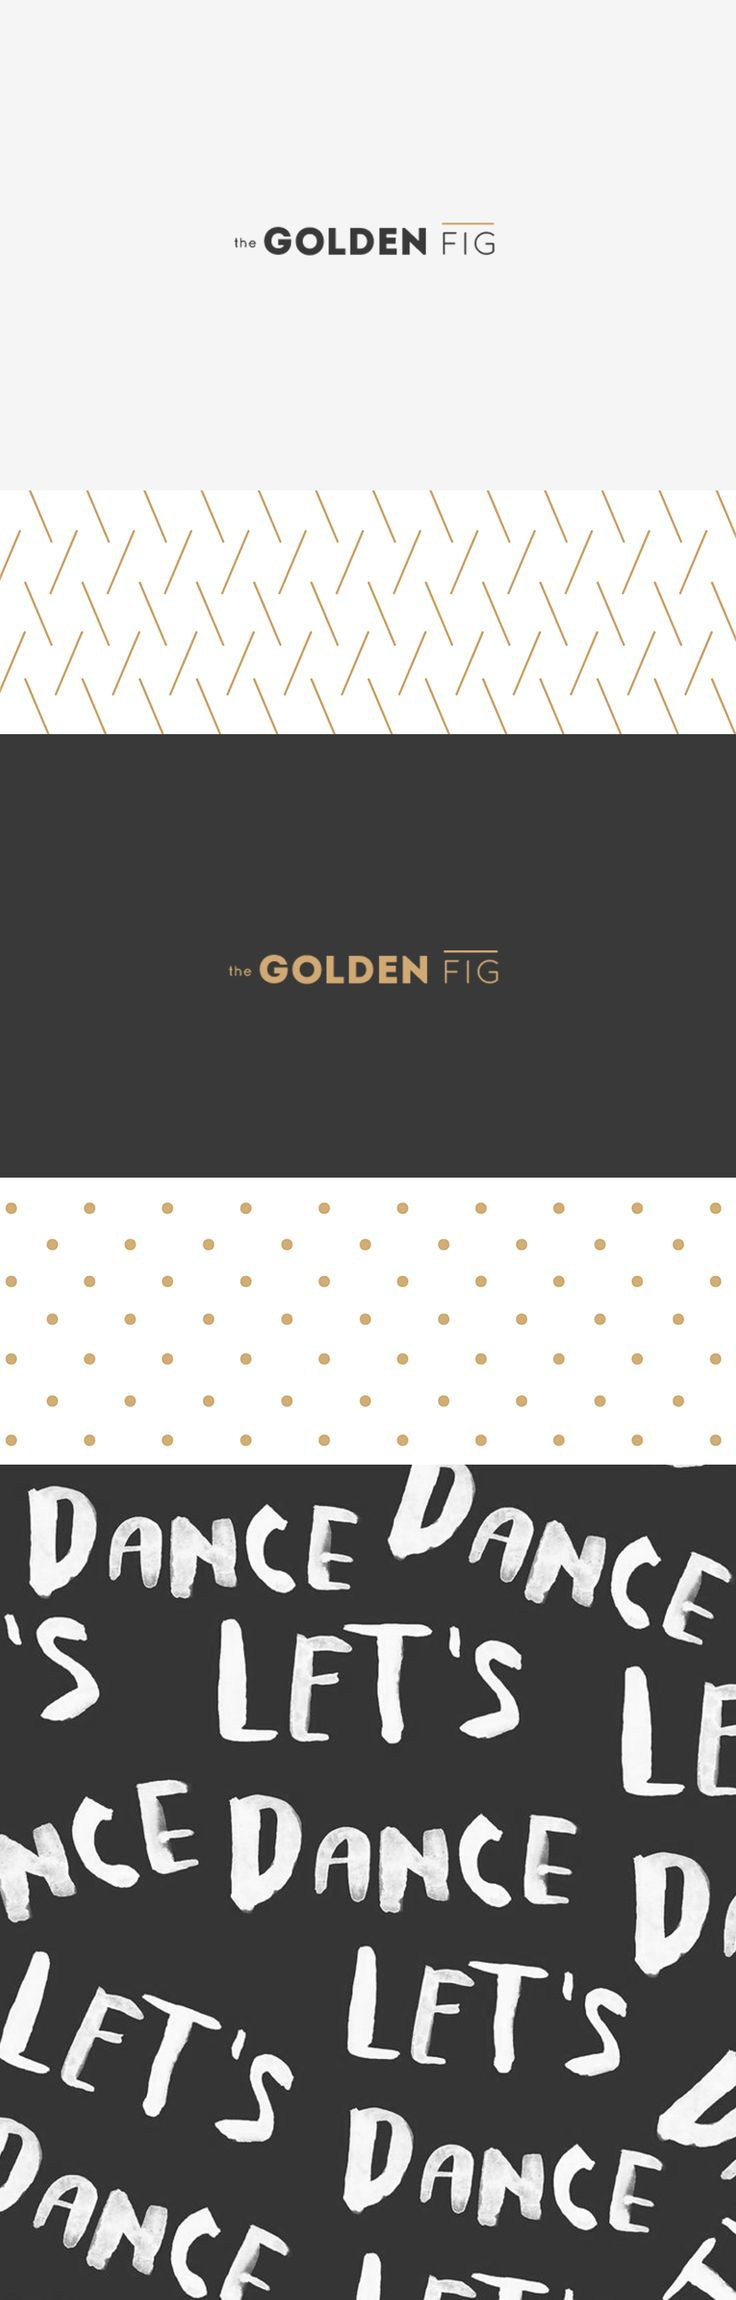 New website is up! | The Golden Fig